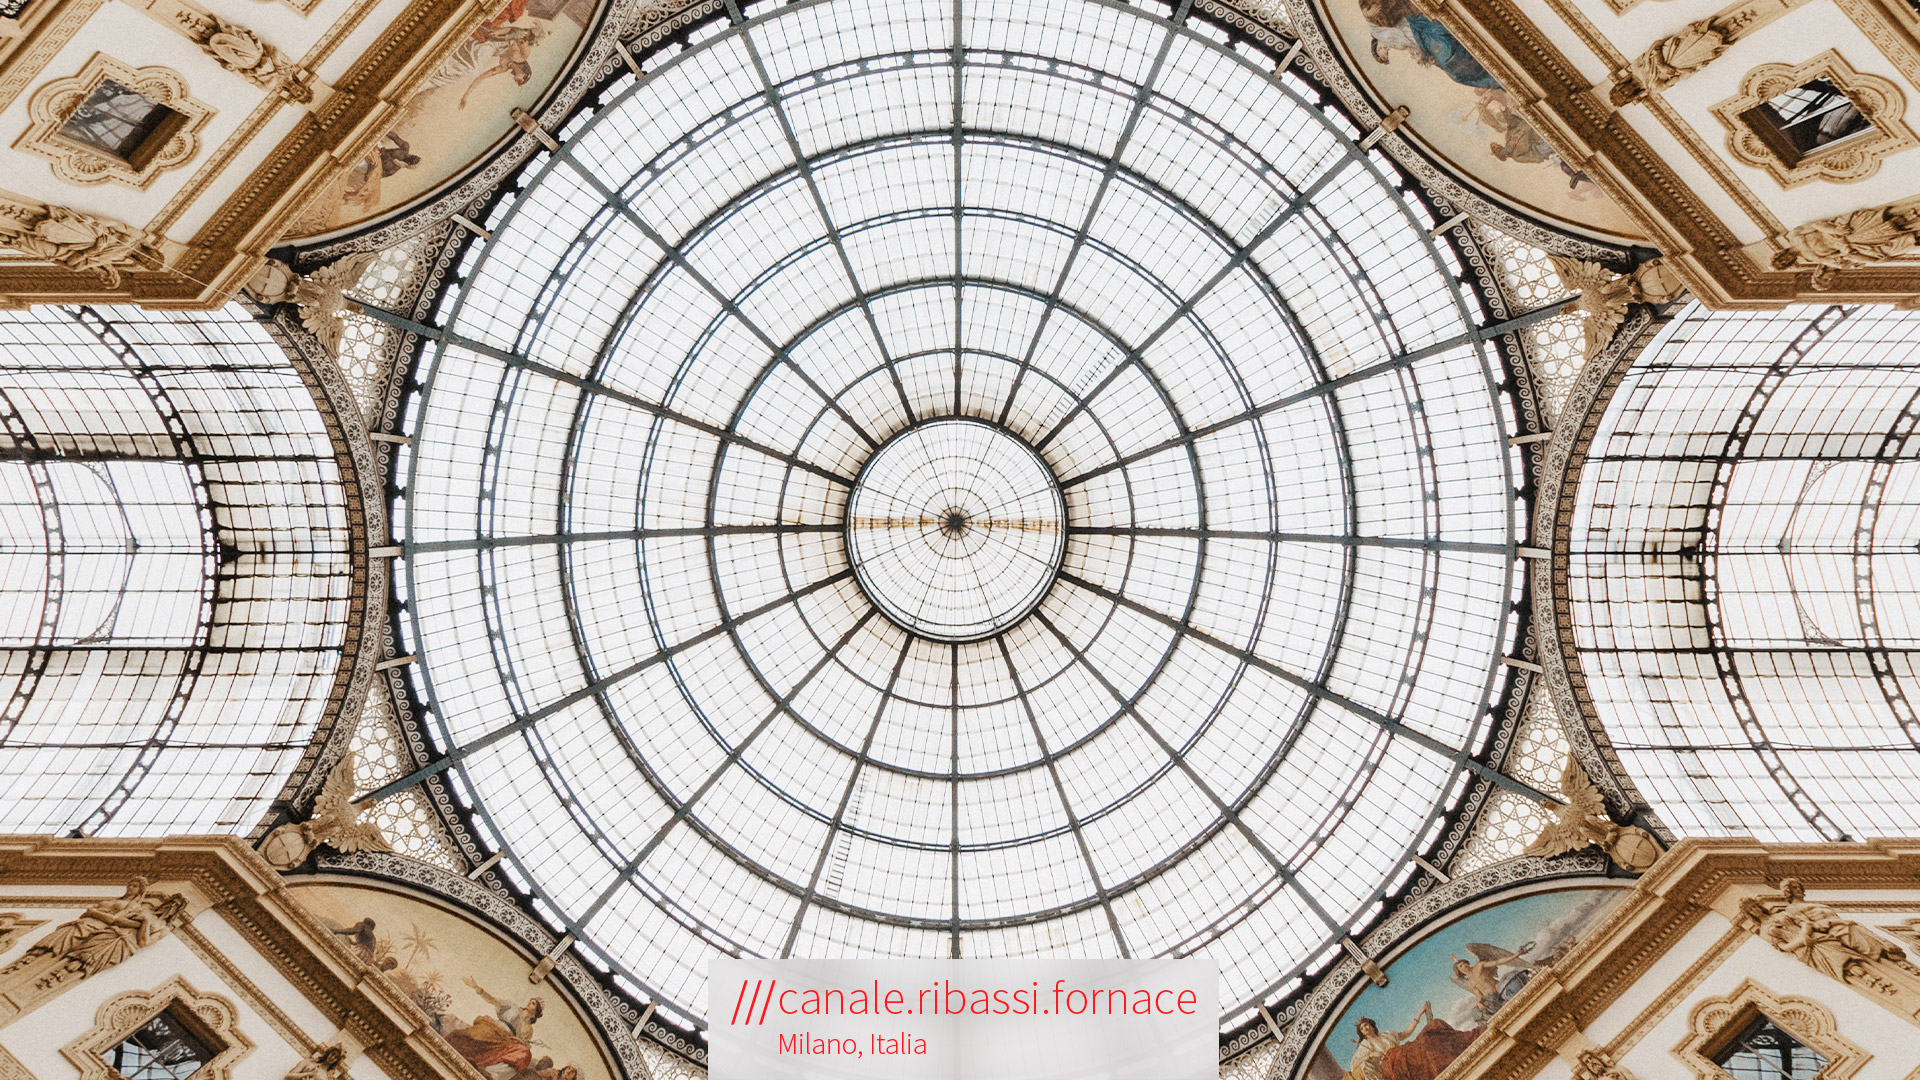 Italian style architecture of a glass roof